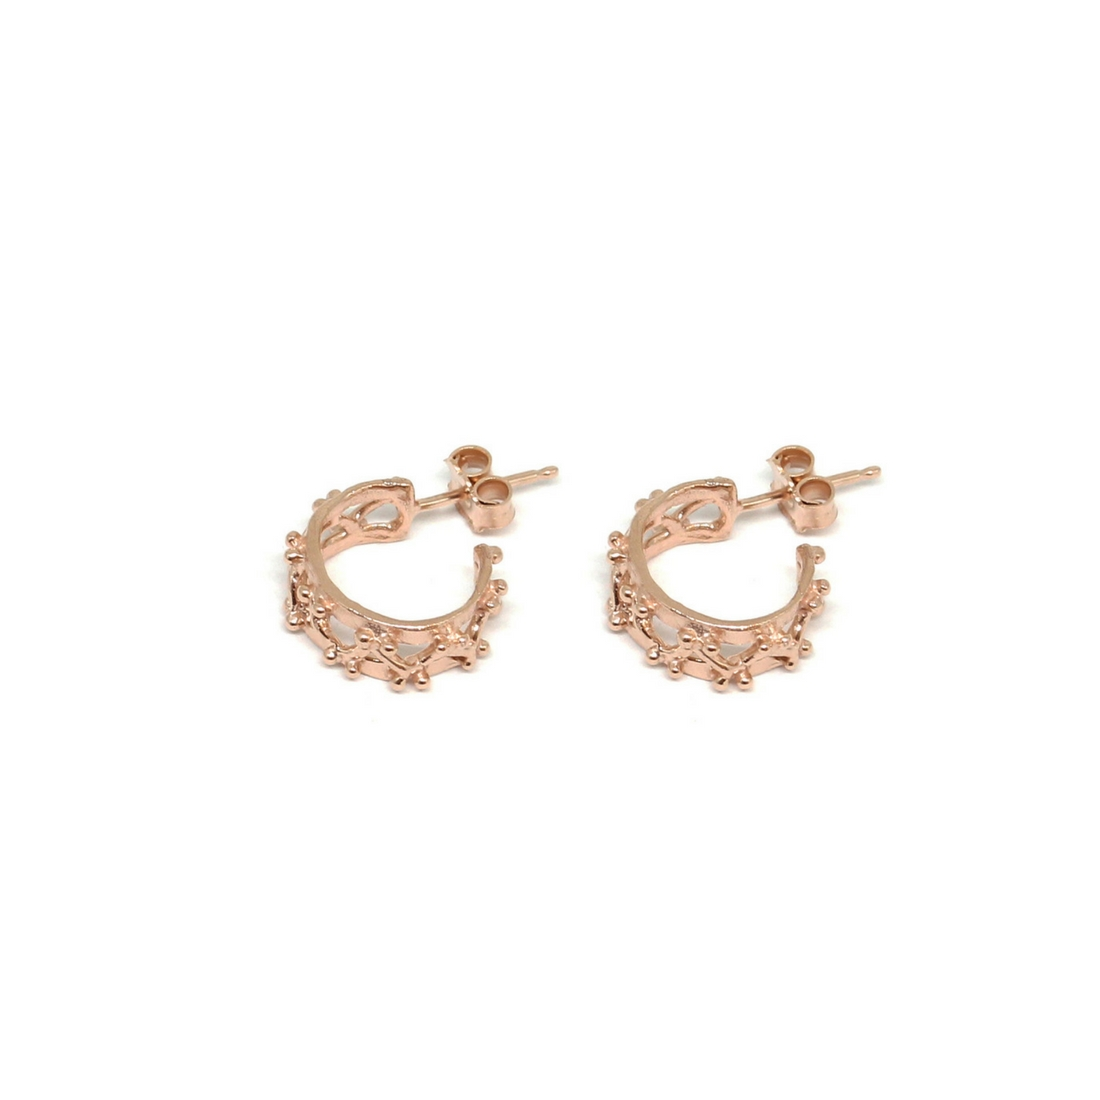 Little Beams Hoop Earrings Rose Gold Plated Bronze Crafted With Love By Co Ro Jewels Now